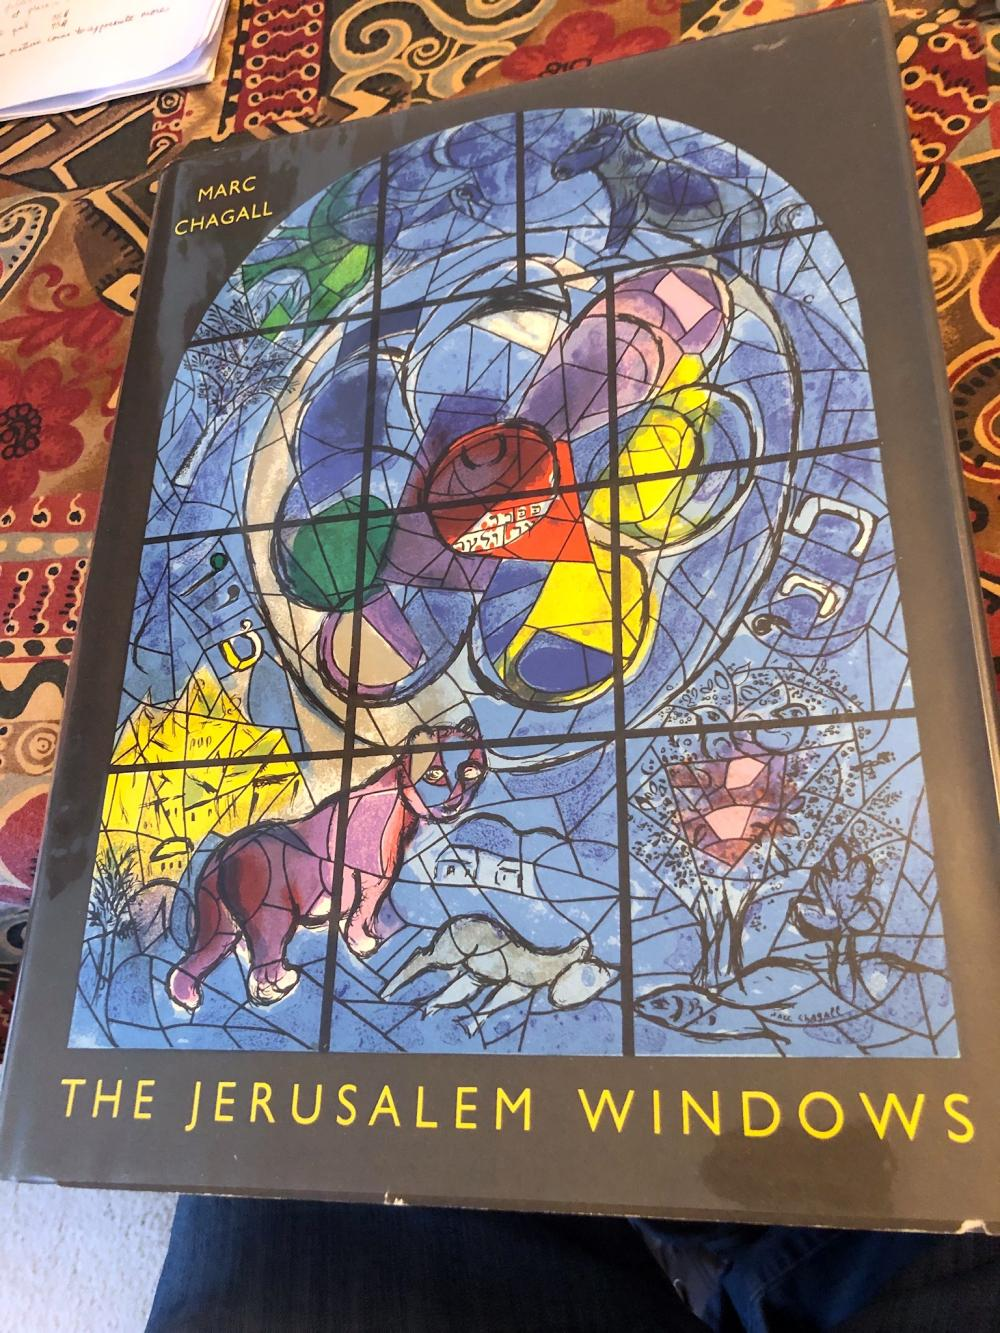 The Jerusalem Windows, First Edition, Marc Chagall